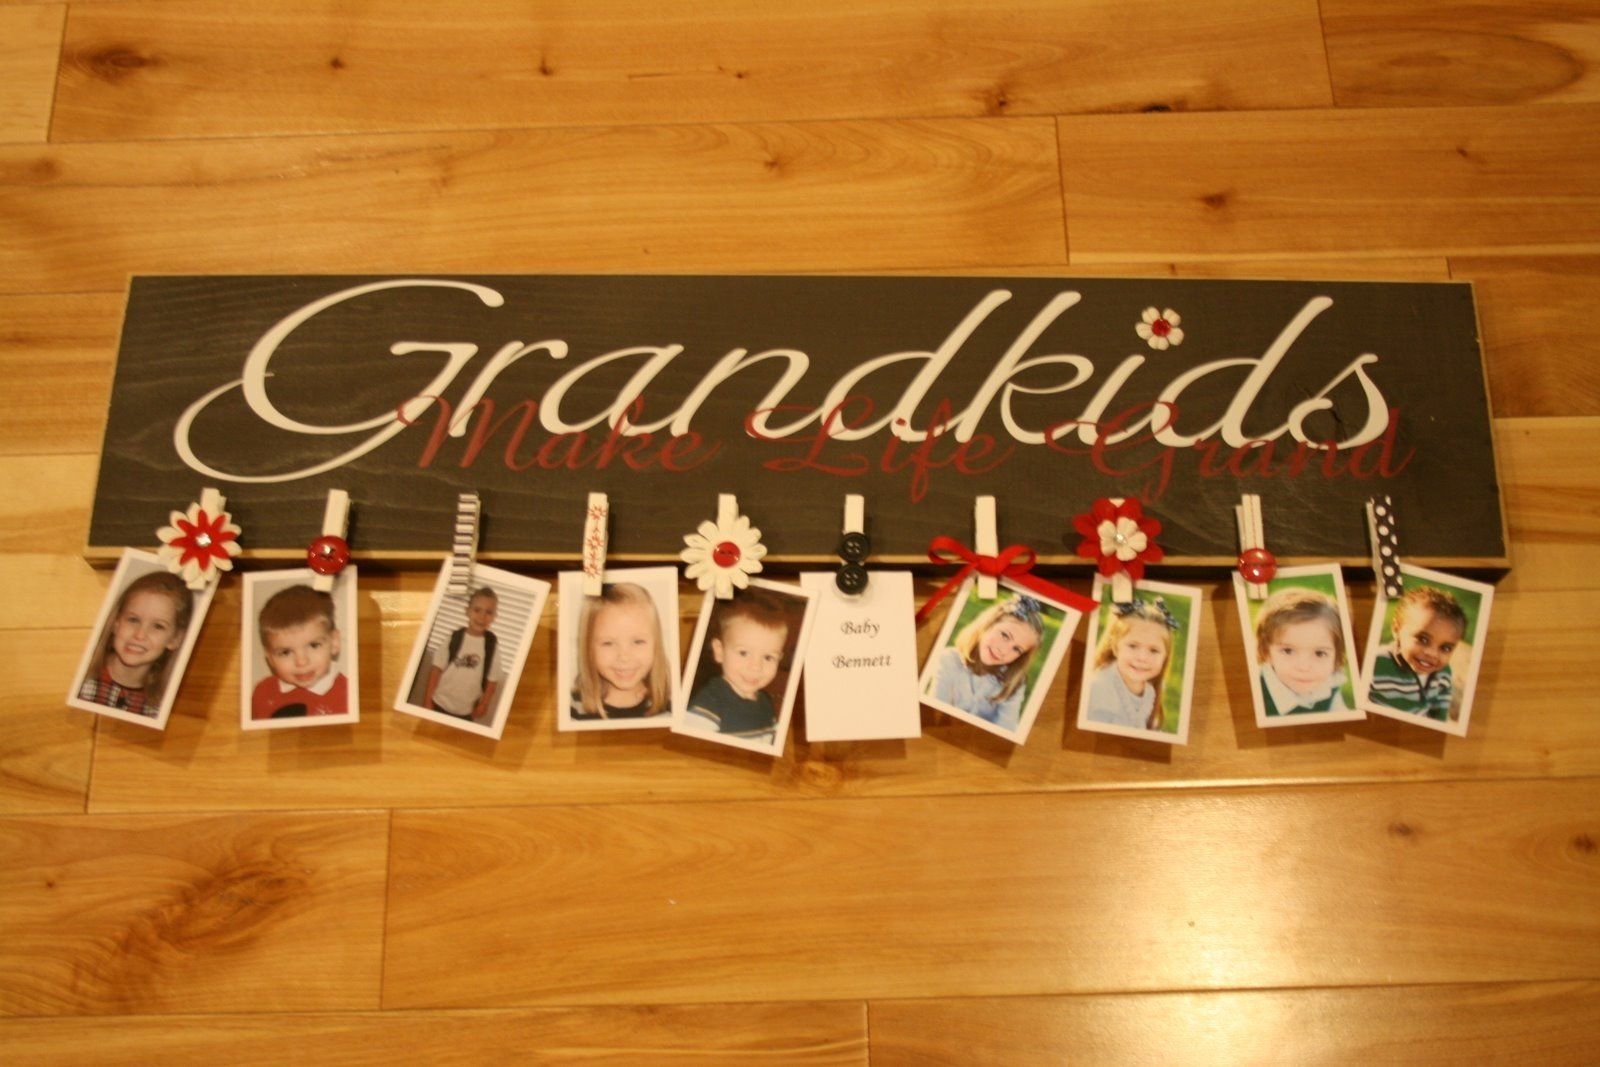 10 Most Recommended Grandparents To Be Gift Ideas great gift idea for grandparents we know how to do it 2020